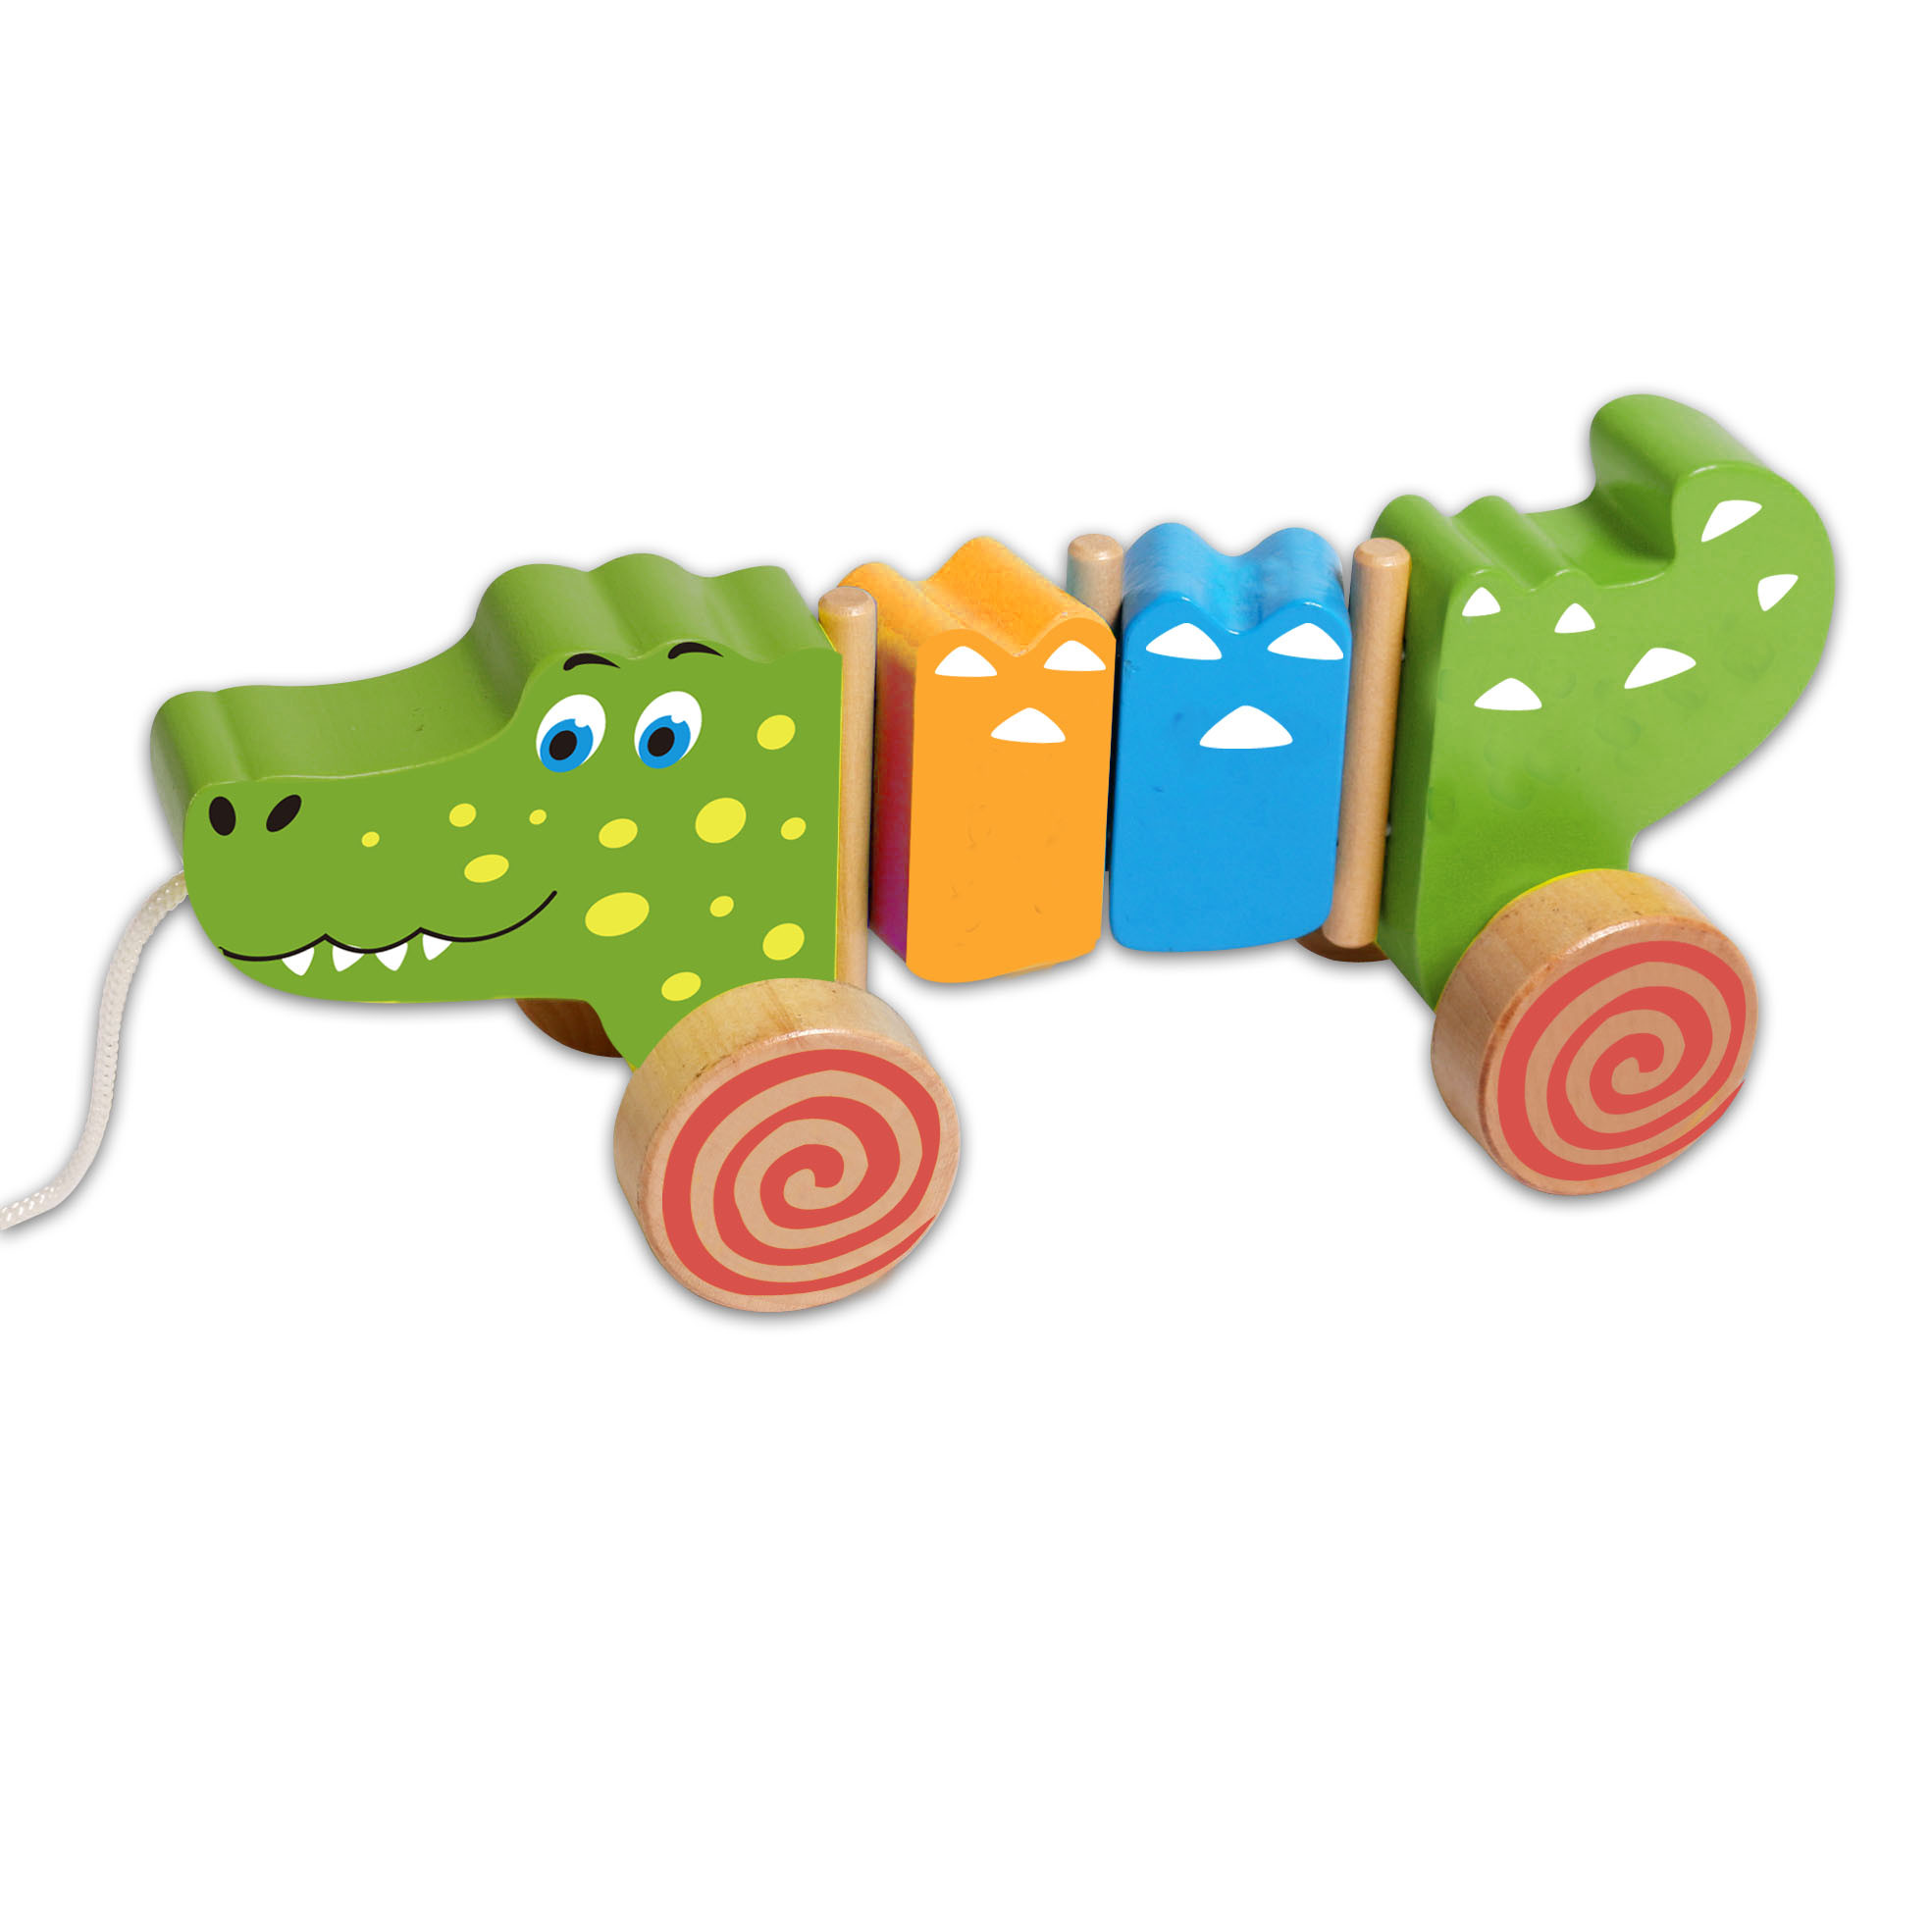 Cute Pull Crocodile Toddler Wooden Toys for Babies and Kids